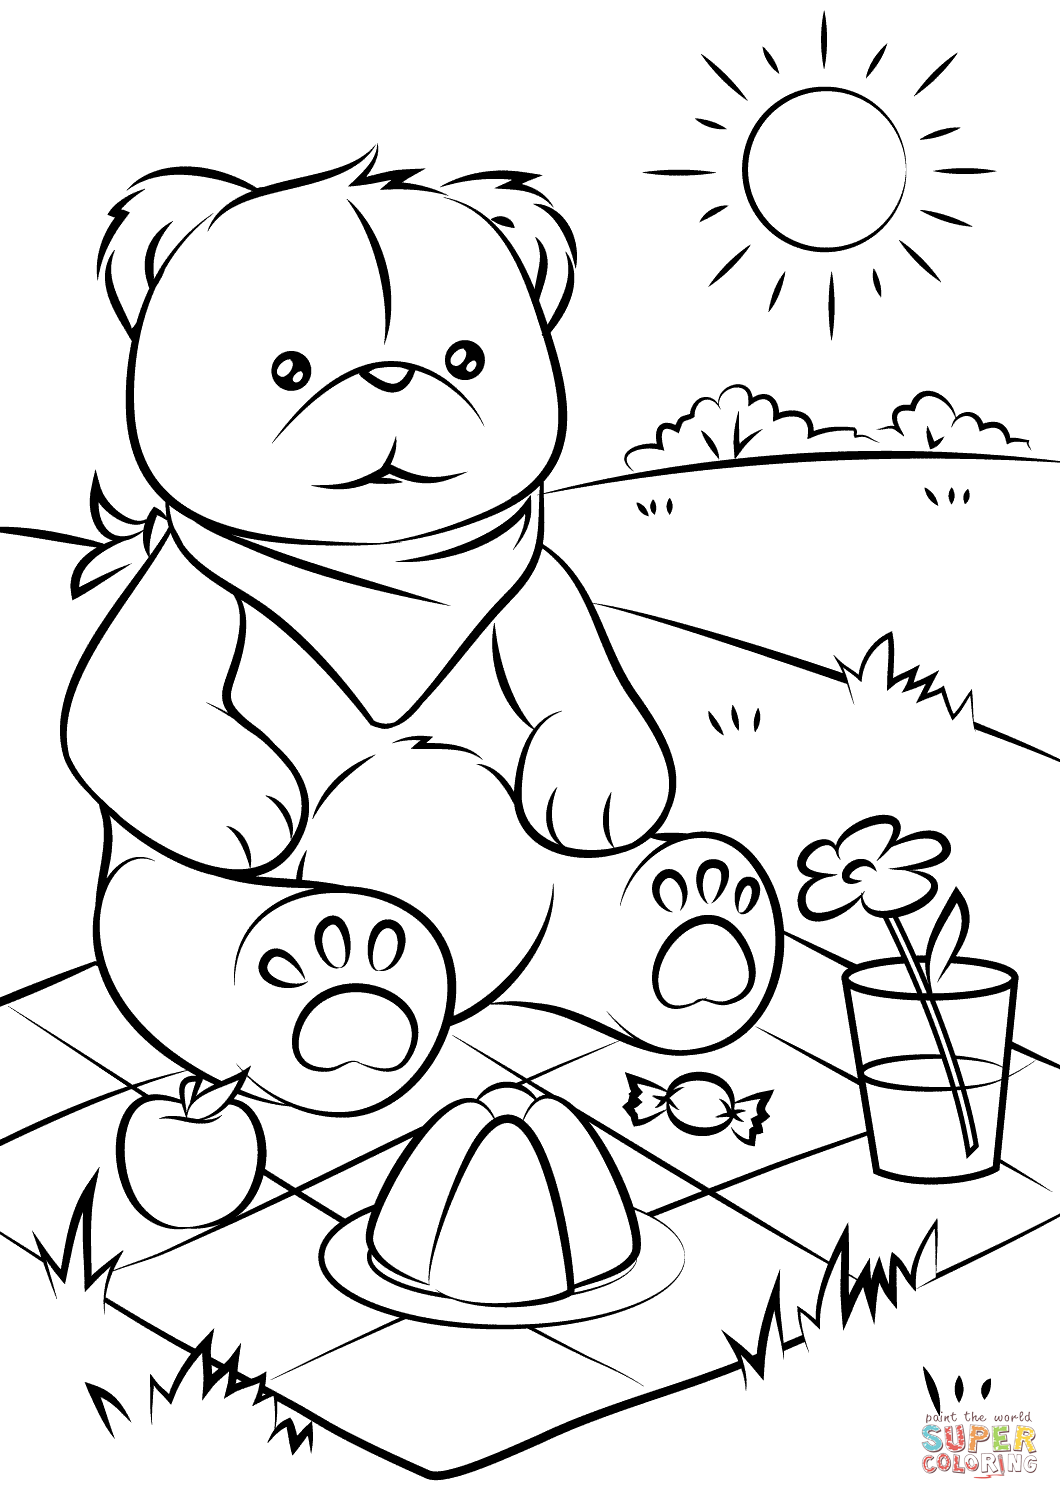 teddy bear picnic coloring pages teddy bear picnic coloring pages for kids it39s a teddy coloring teddy picnic bear pages